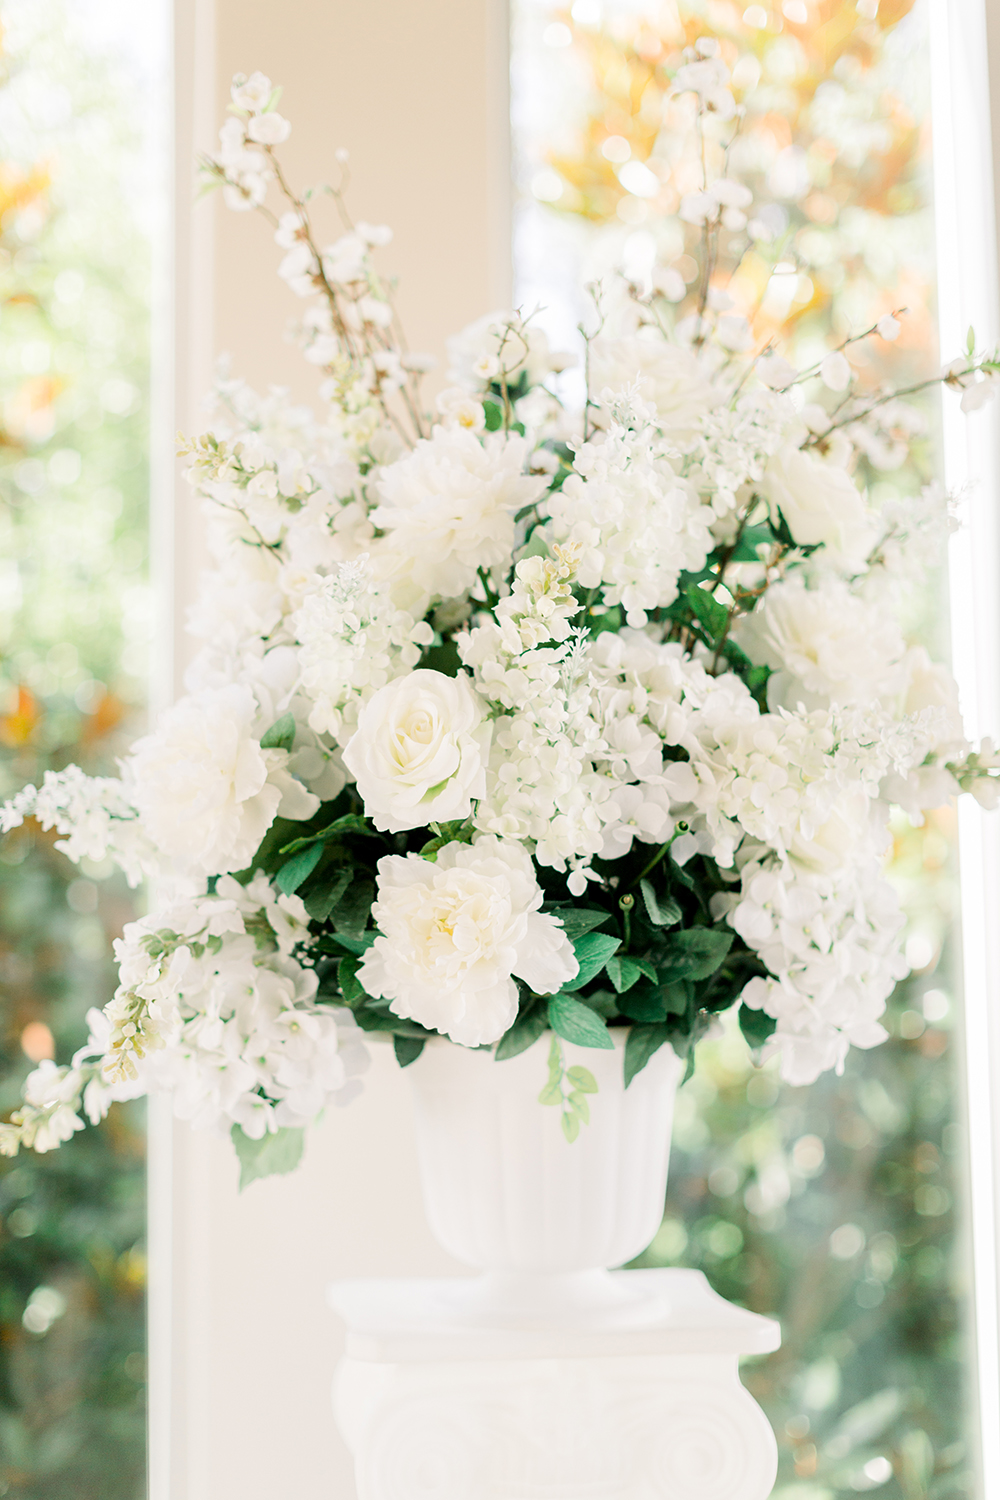 flowers - centerpieces - white - green - ivory